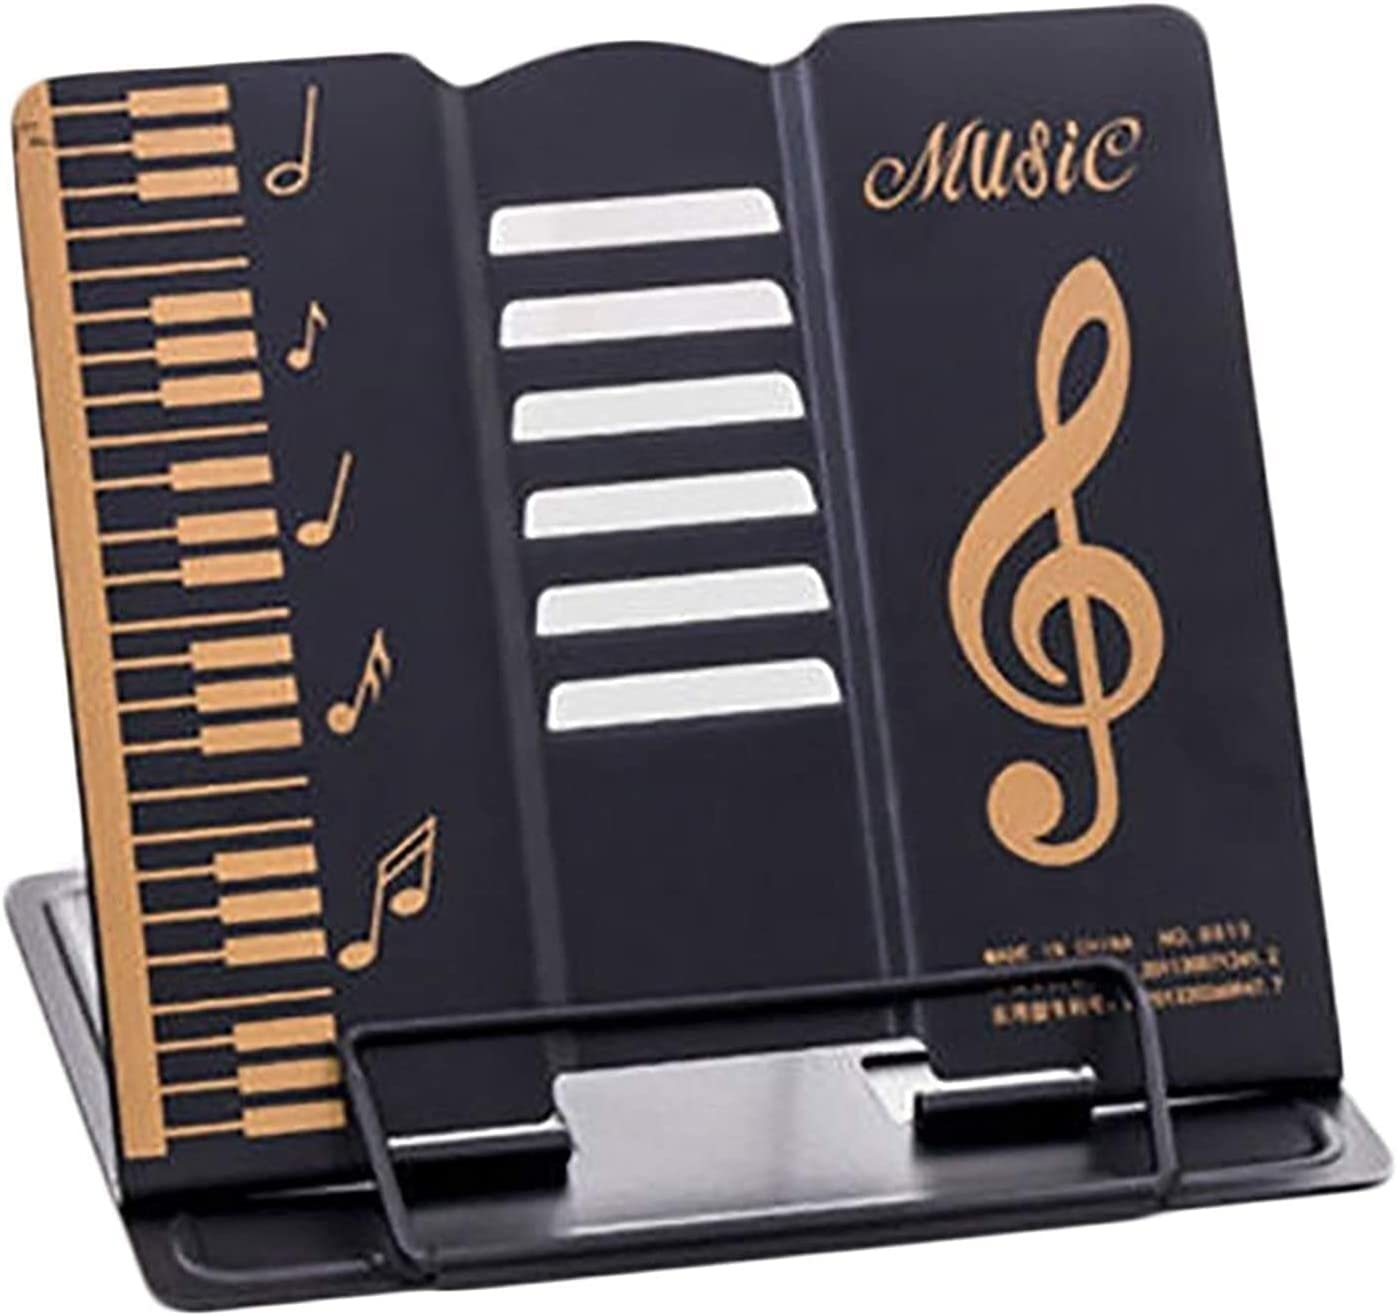 NEW LSZ Reading Rack Desktop File Stand Music Holder Book Cheap mail order specialty store Chil